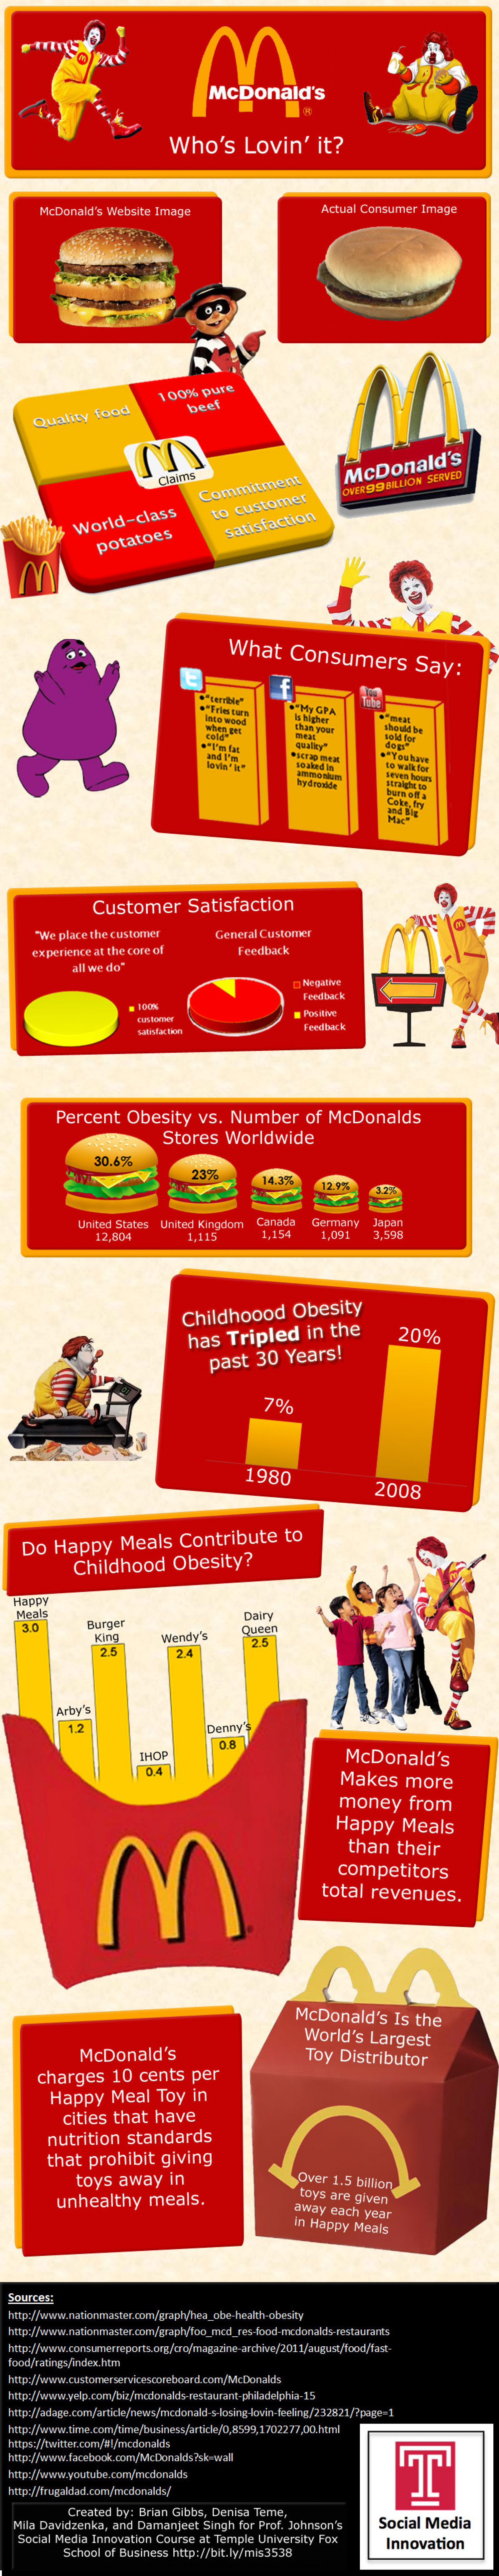 Who's Lovin' It? Infographic